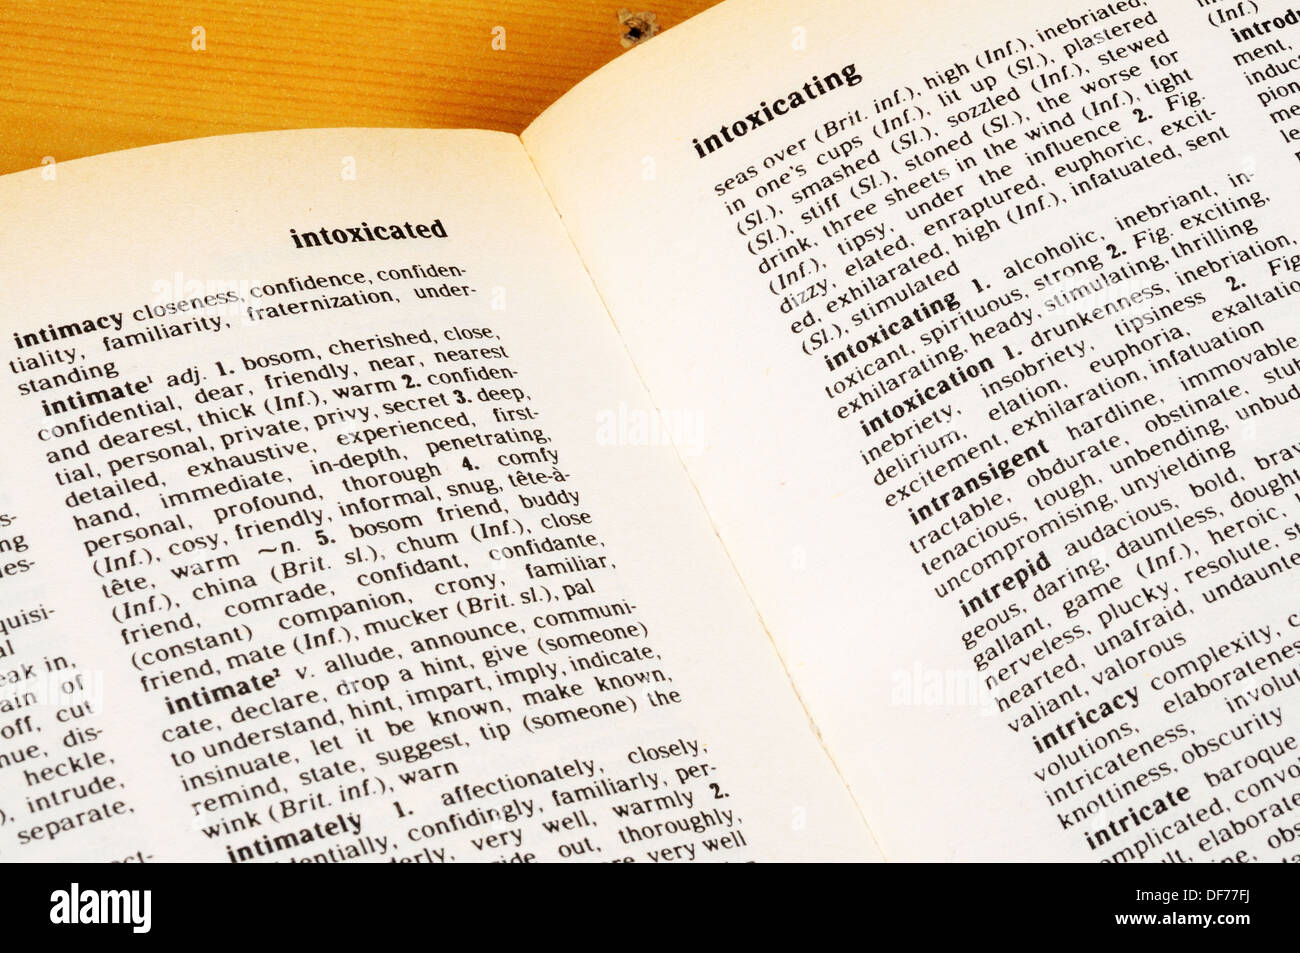 Pages of a Thesaurus Stock Photo: 61010534 - Alamy